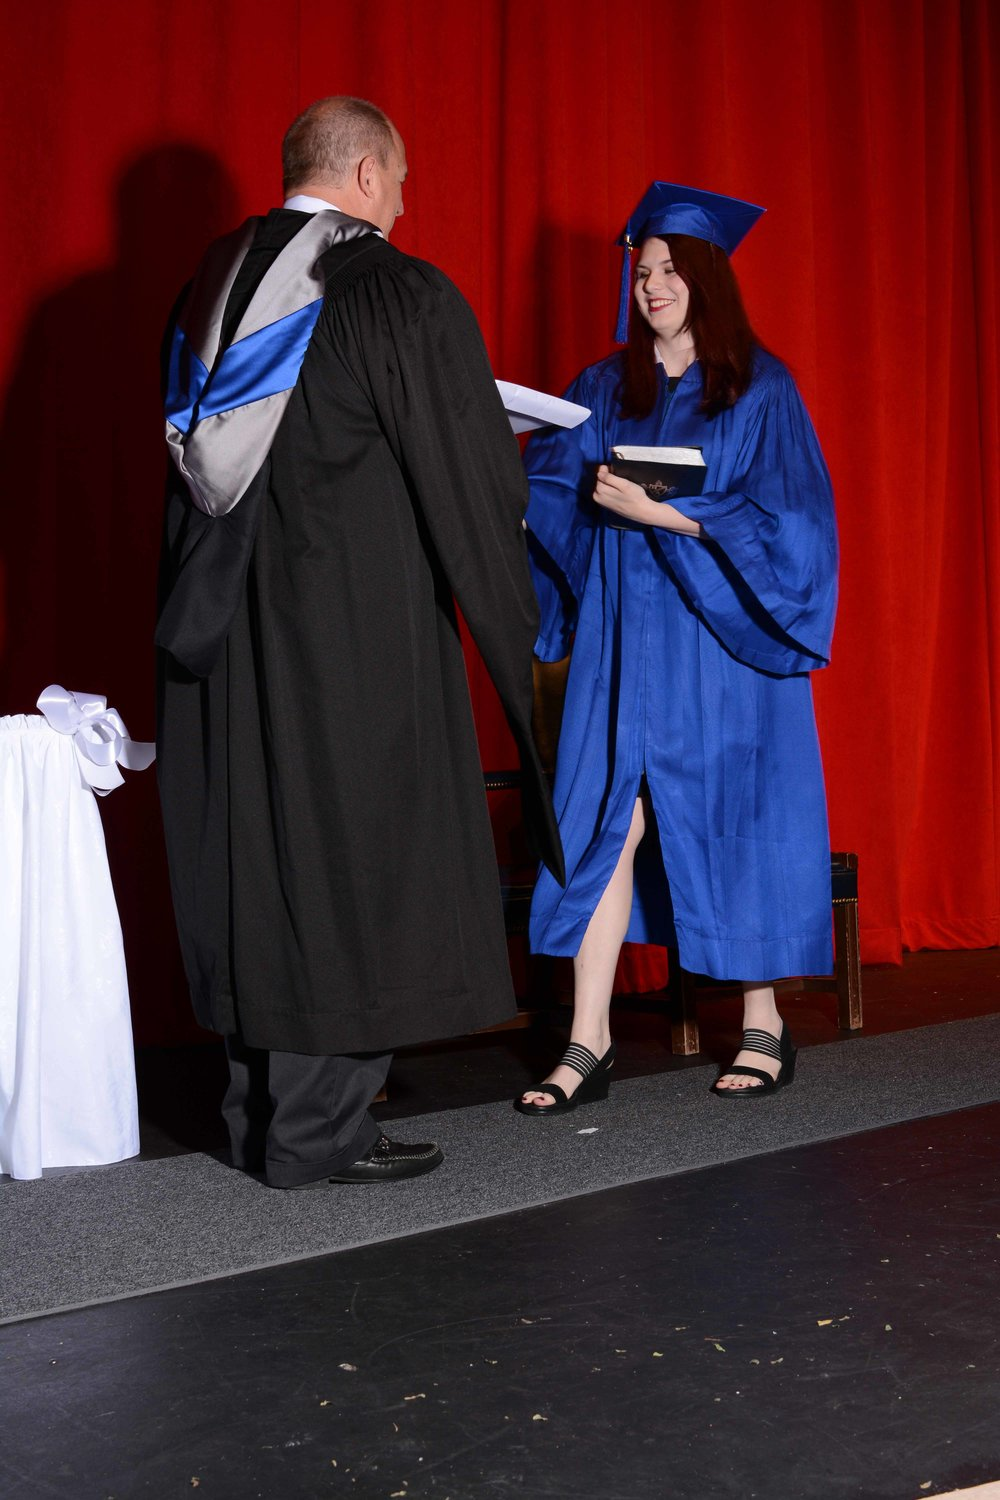 May15 HardingGraduation85.jpg